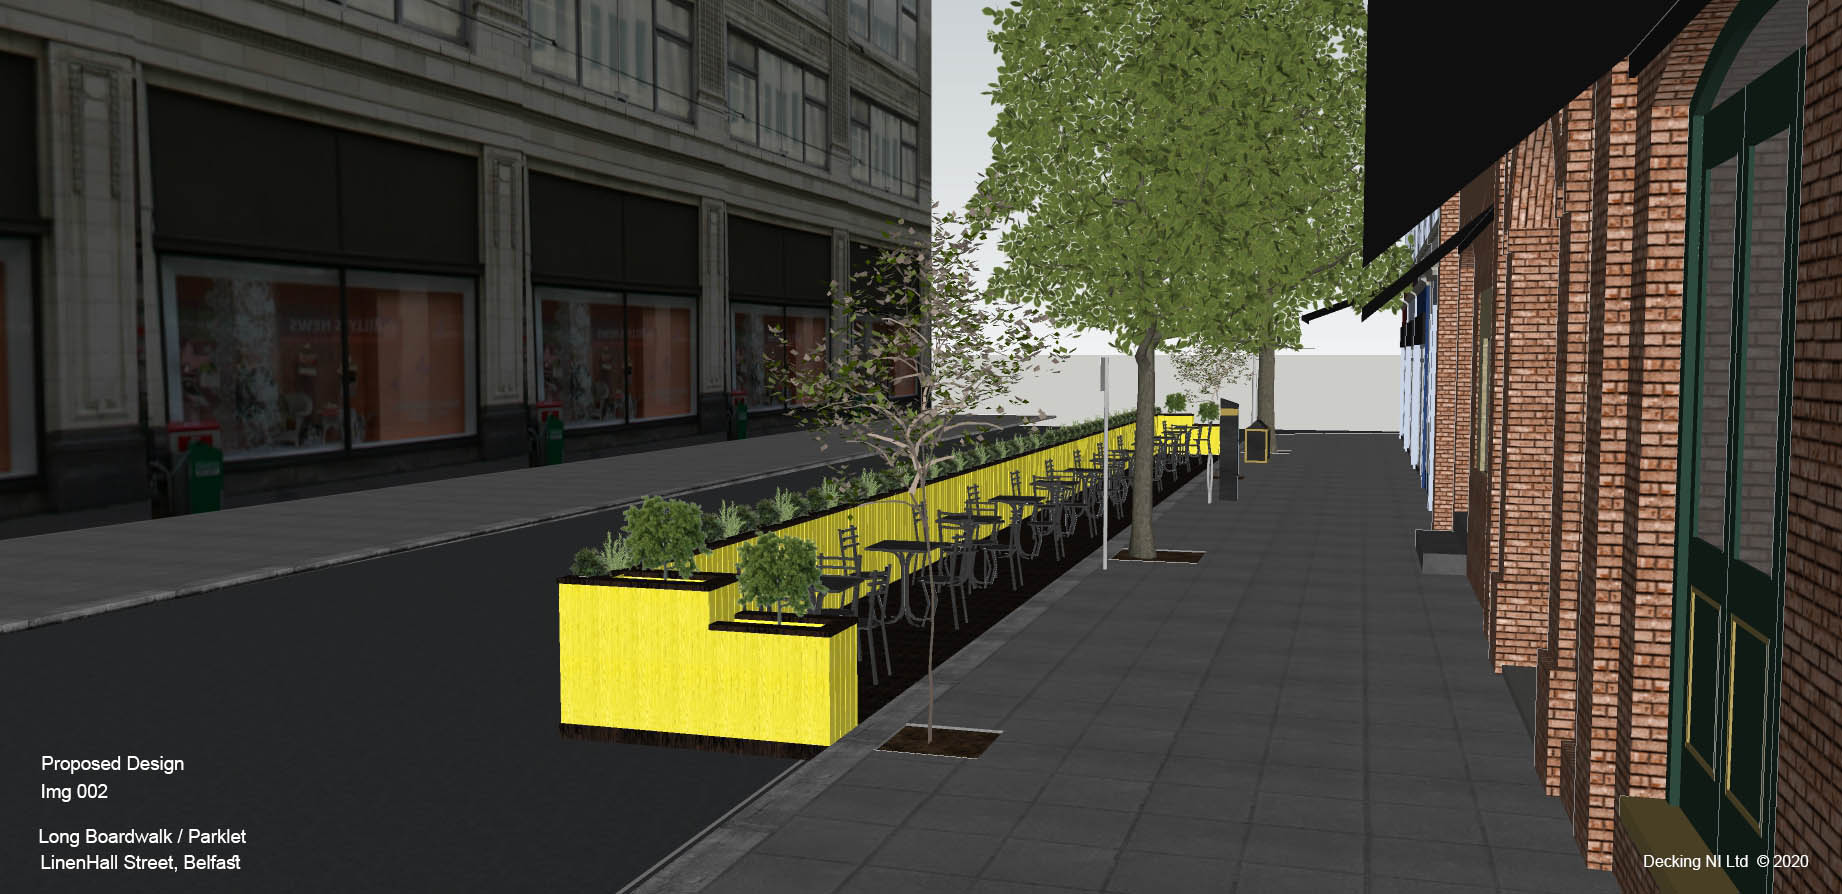 img 002 proposal    Long Boardwalk Parket, LinenHall Street, Belfast